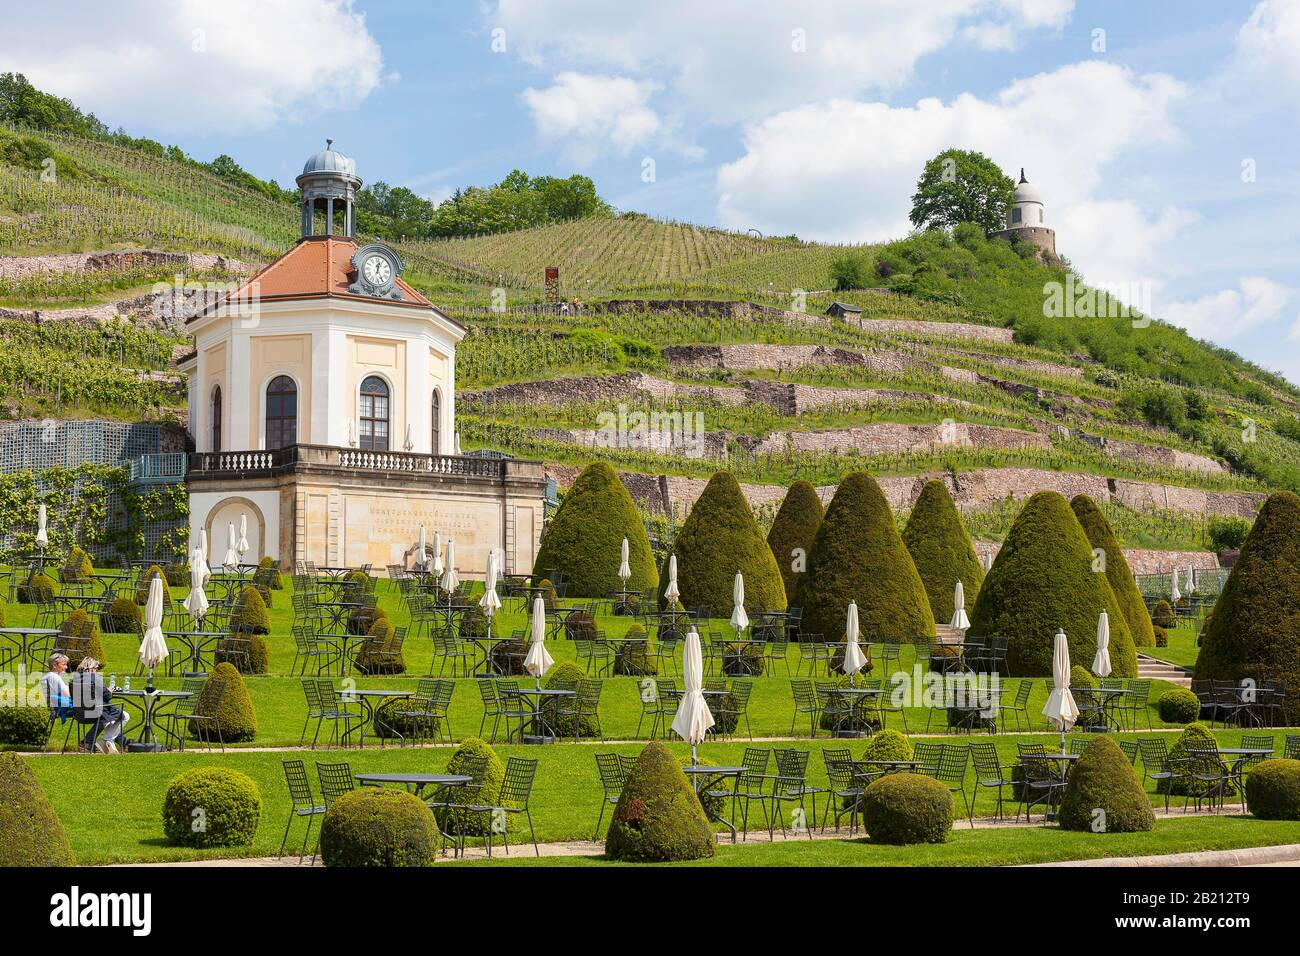 Belvedere in the castle park Wackerbarth with Jacobstein, in the background the vineyards, Radebeul, Saxony, Germany Stock Photo